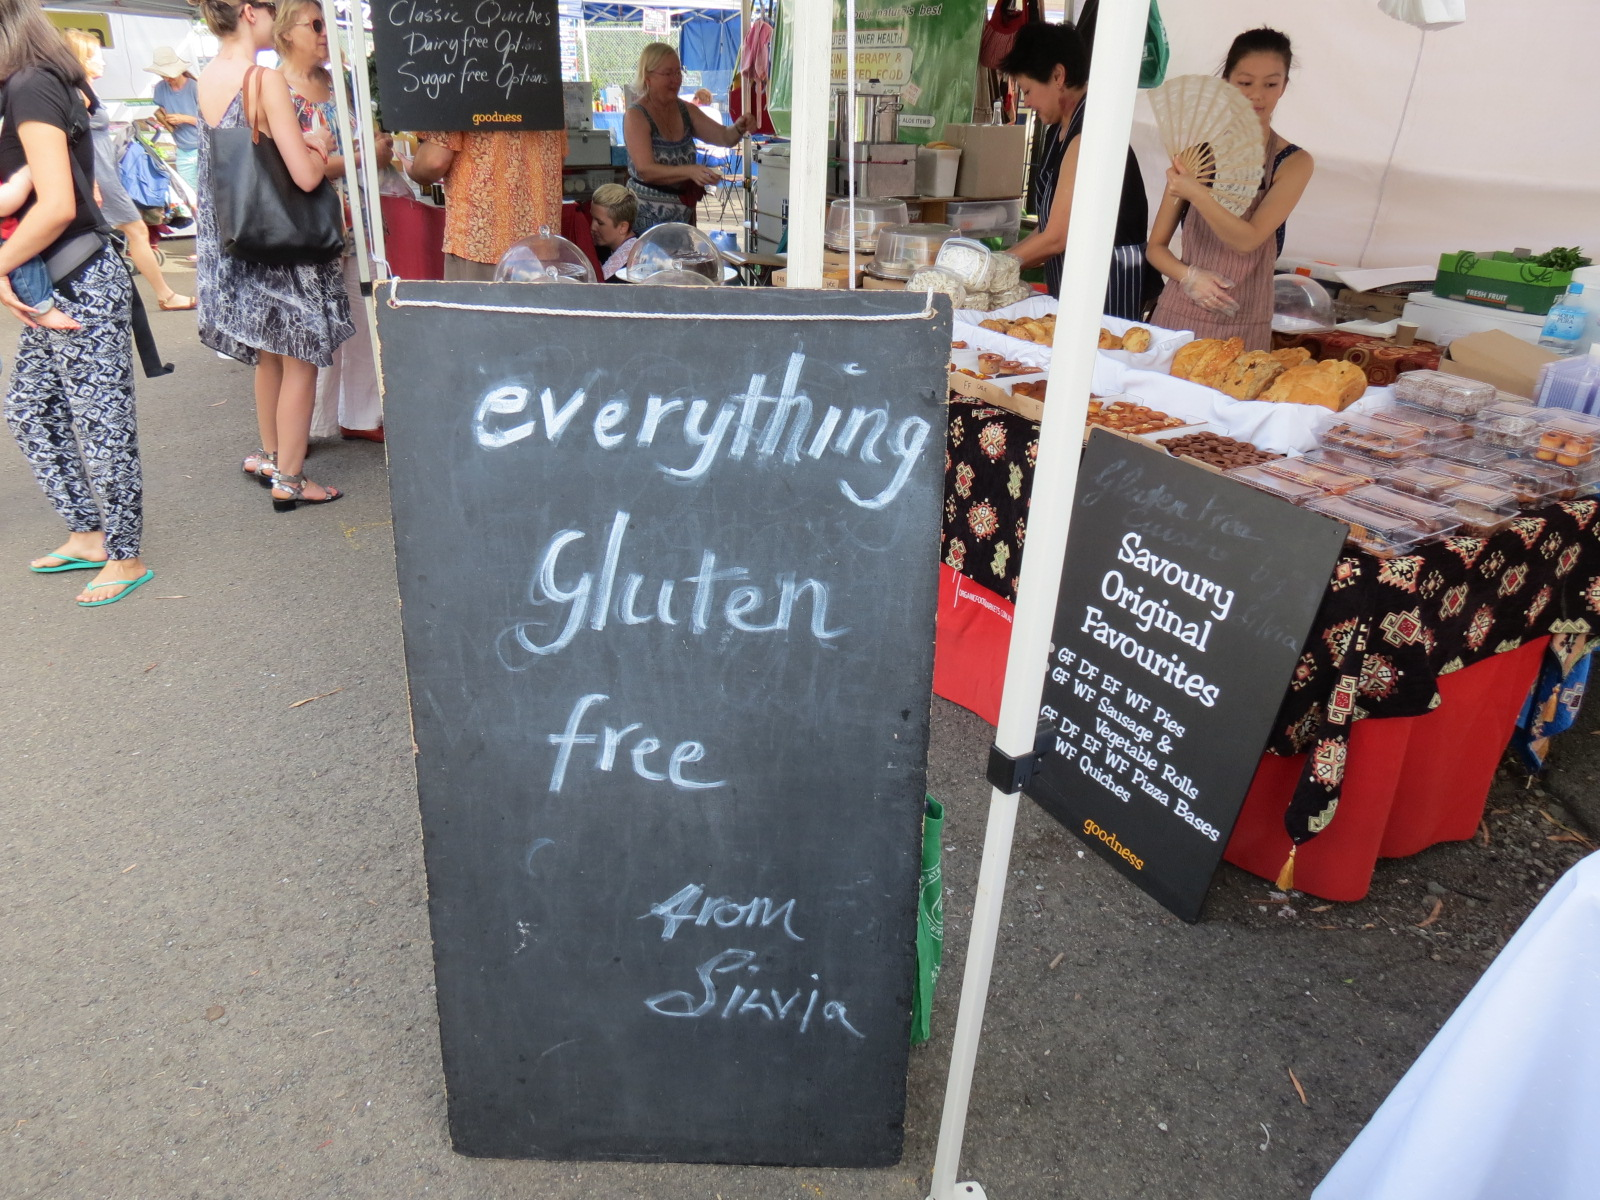 Sugar free, dairy free, gluten free... anything free, to cater for your needs.